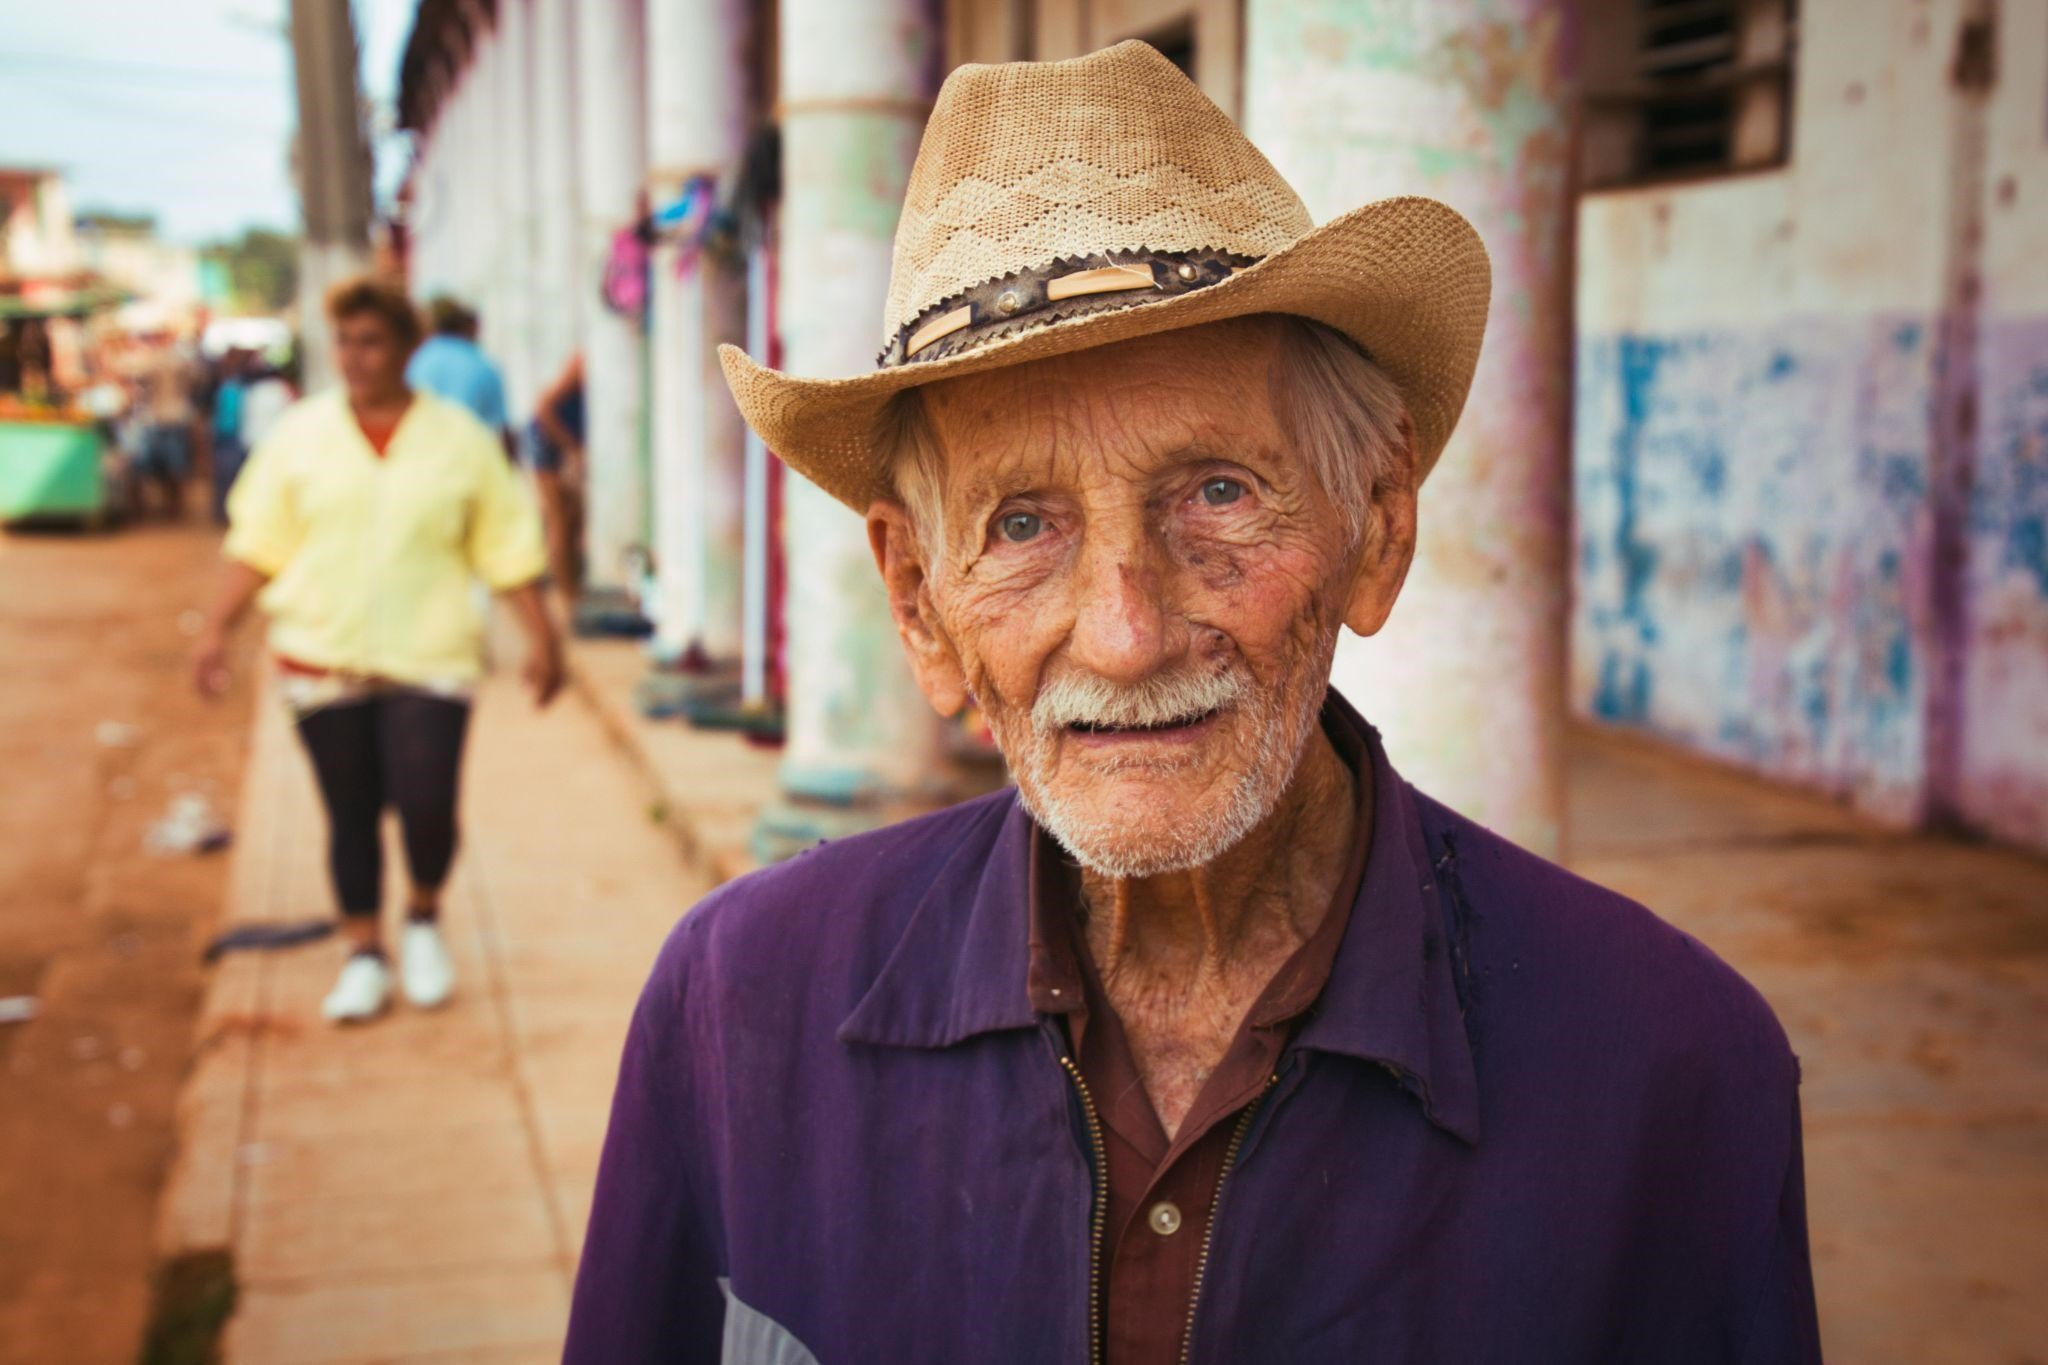 Current challenges for dementia caregiving in Latin America: the role of Brain Health Diplomacy